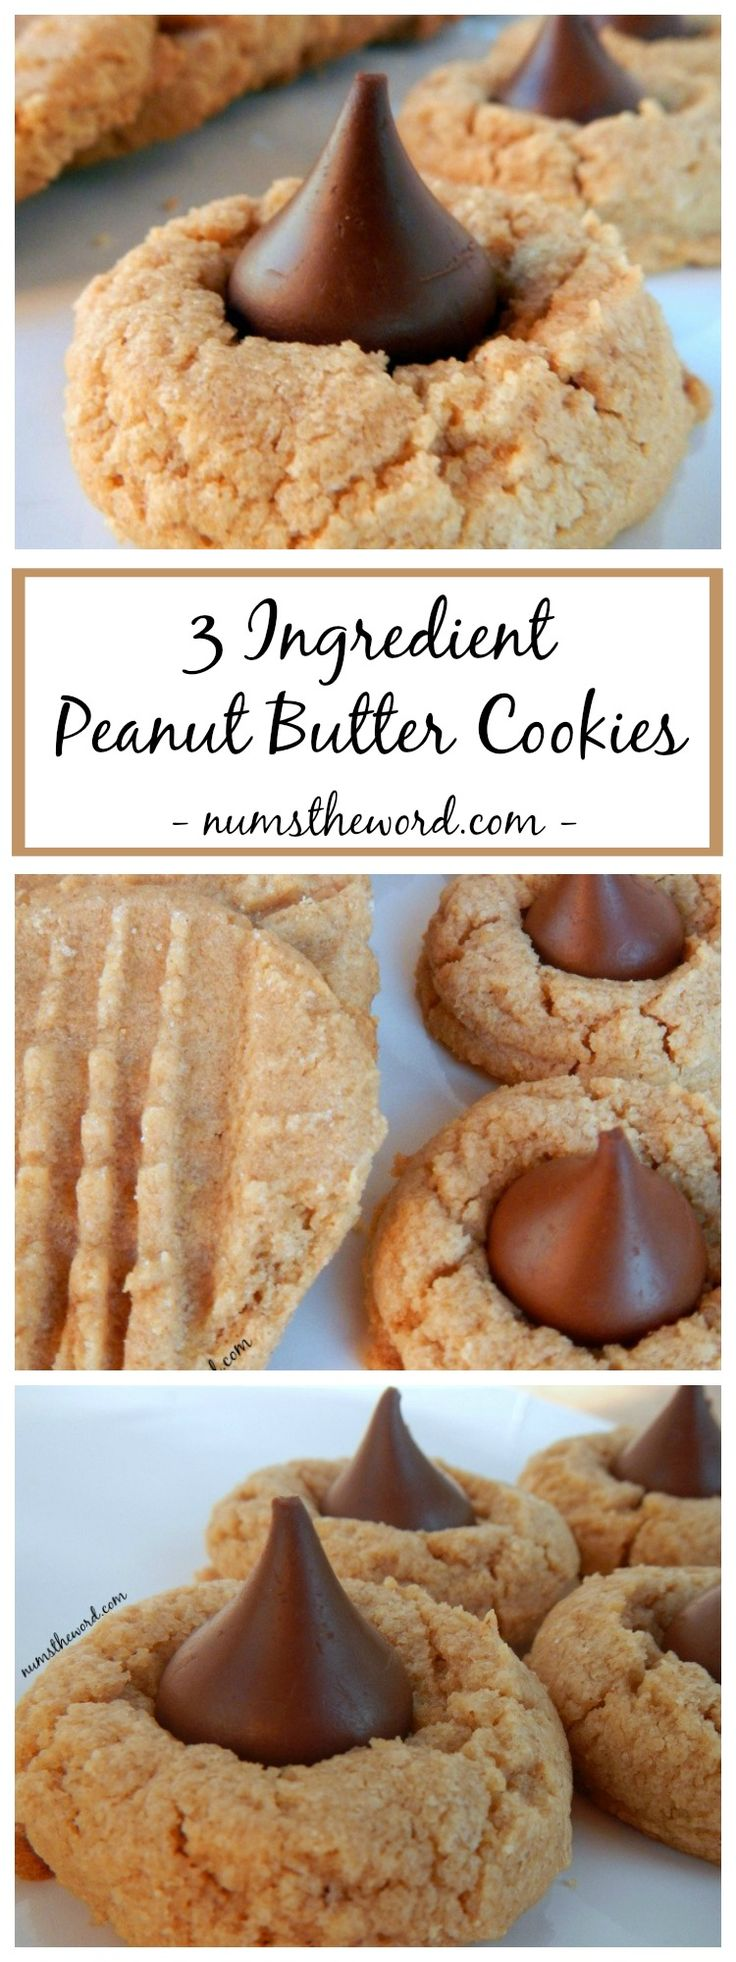 If you love peanut butter cookies, you should try this classic 3 ingredient peanut butter cookie recipe. Enjoy these the traditional way or with a kiss!